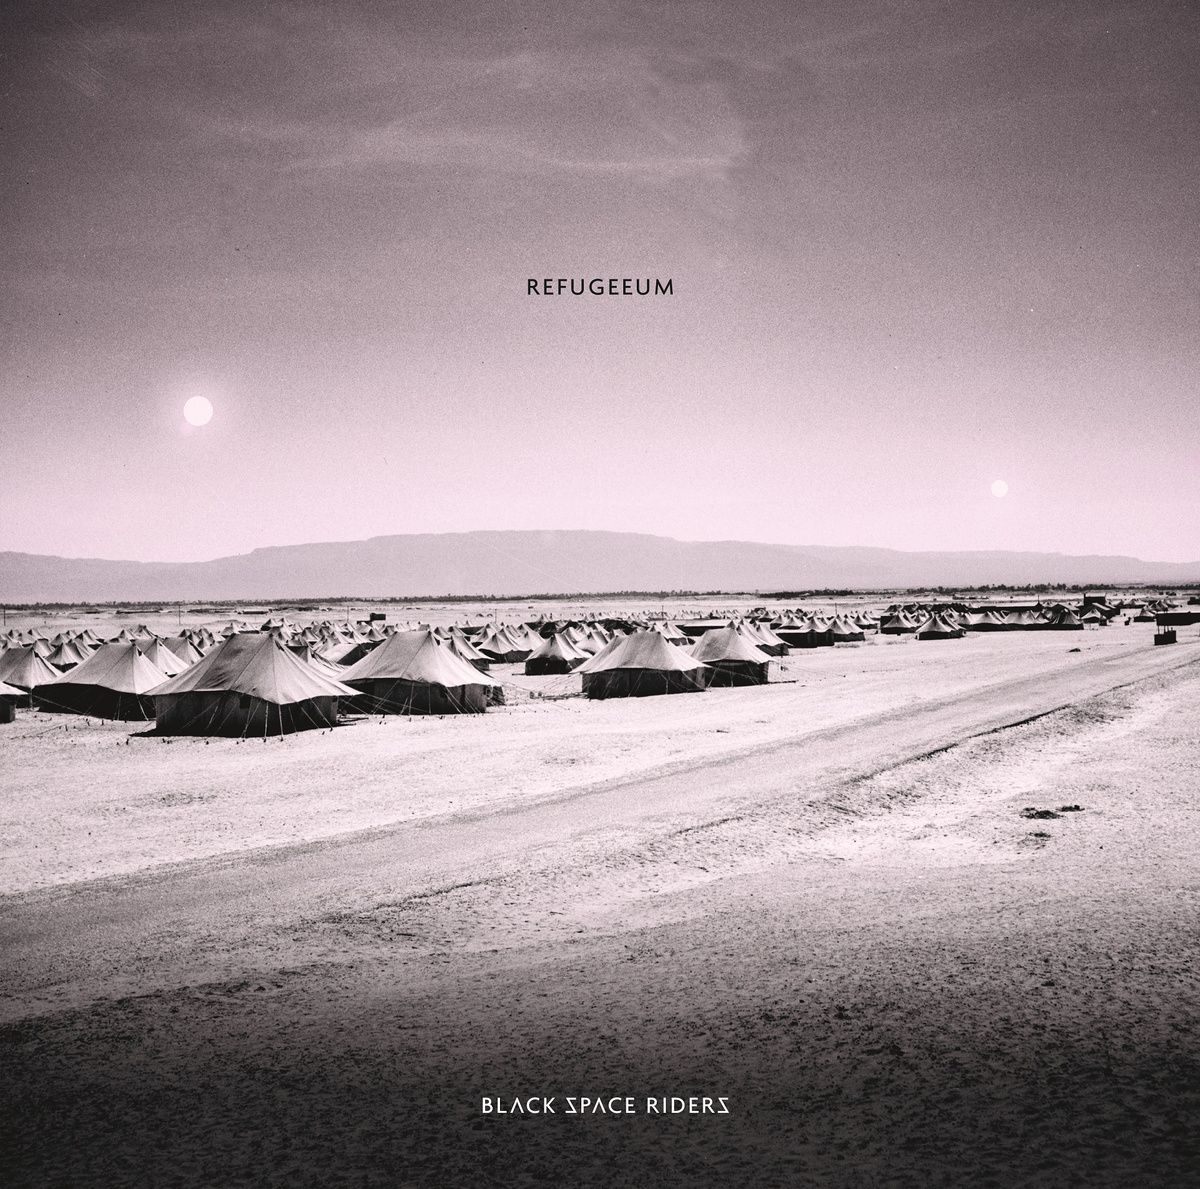 BLACK SPACE RIDERS - Refugeeum (2015)